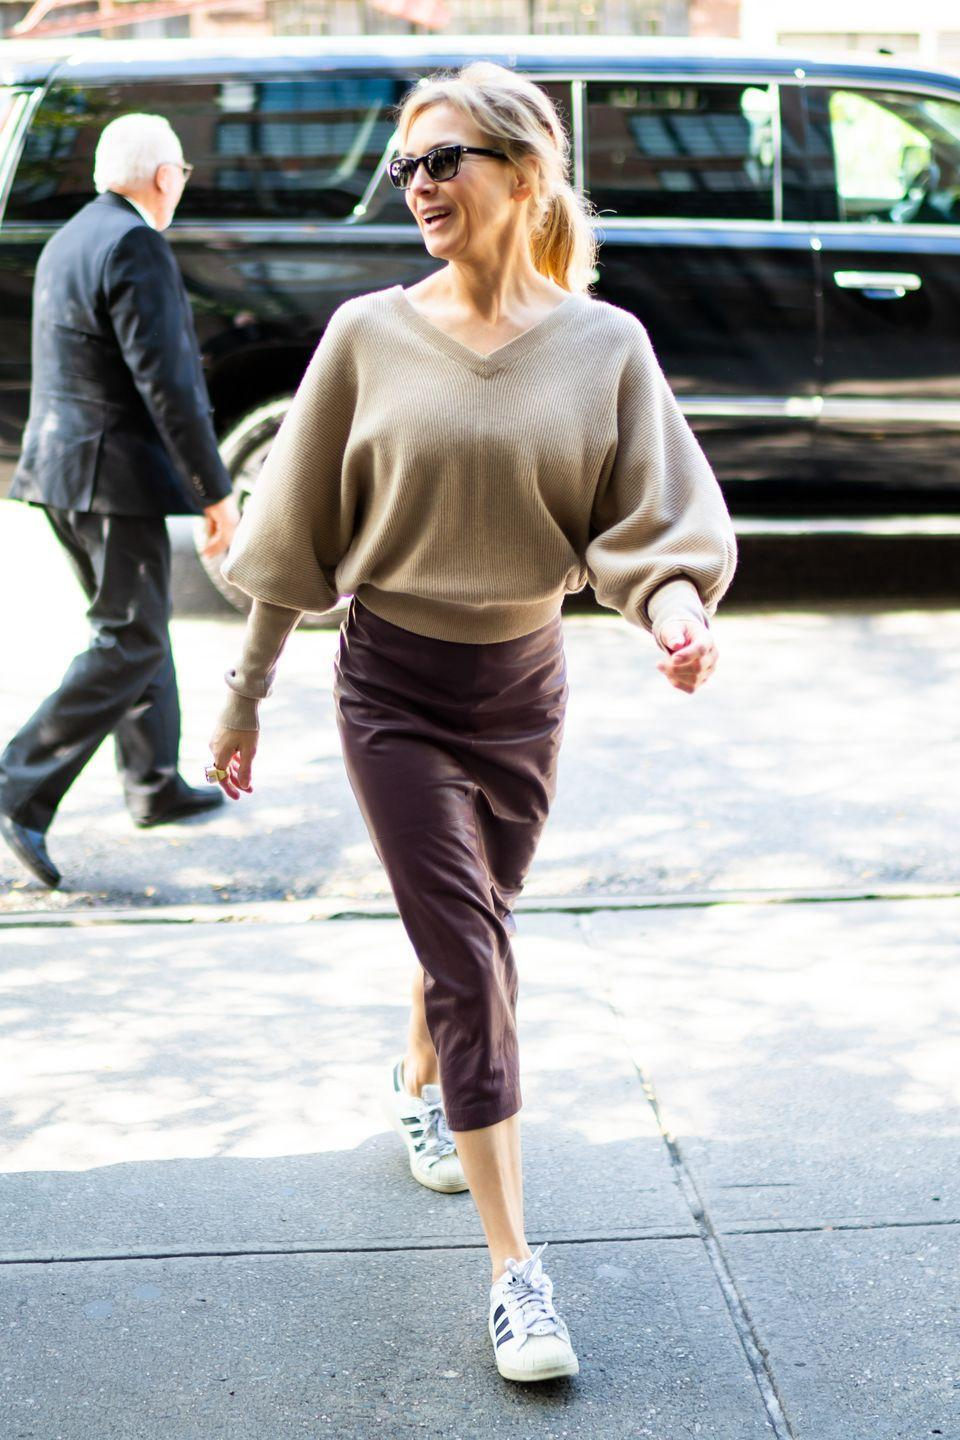 """<p>A cozy sweater paired with a streamlined leather pencil skirt is an evergreen combination. But do as <a href=""""https://www.townandcountrymag.com/leisure/arts-and-culture/a29026941/renee-zellweger-judy-garland-interview/"""" rel=""""nofollow noopener"""" target=""""_blank"""" data-ylk=""""slk:Renee Zellweger"""" class=""""link rapid-noclick-resp"""">Renee Zellweger</a> did and throw in a surprise—sporty accessories like Adidas sneakers and a smart watch—to give the look an unexpected air of casual nonchalance.</p>"""